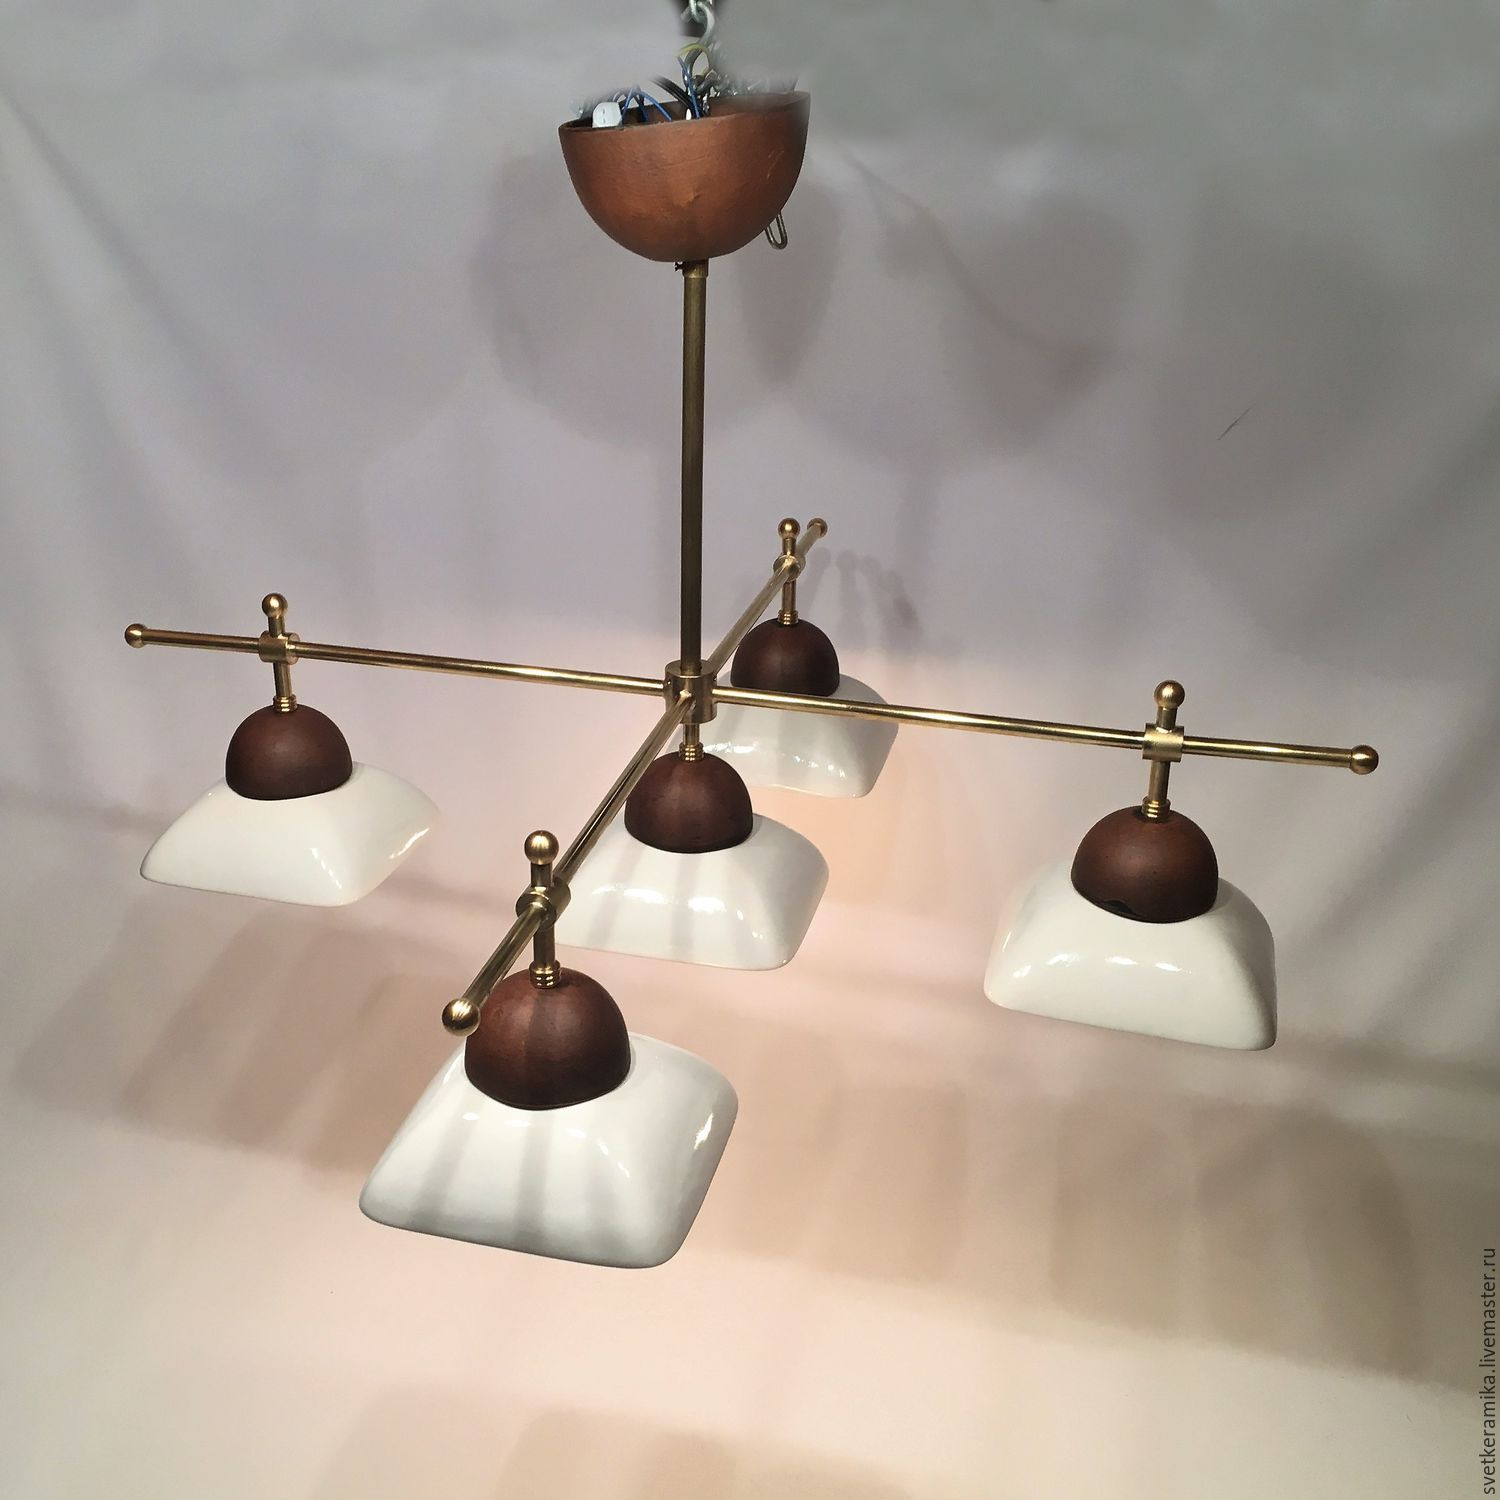 Ceramic chandelier with five shades and brass frame shop online on lamps handmade livemaster handmade buy ceramic chandelier with five shades and brass frame aloadofball Gallery